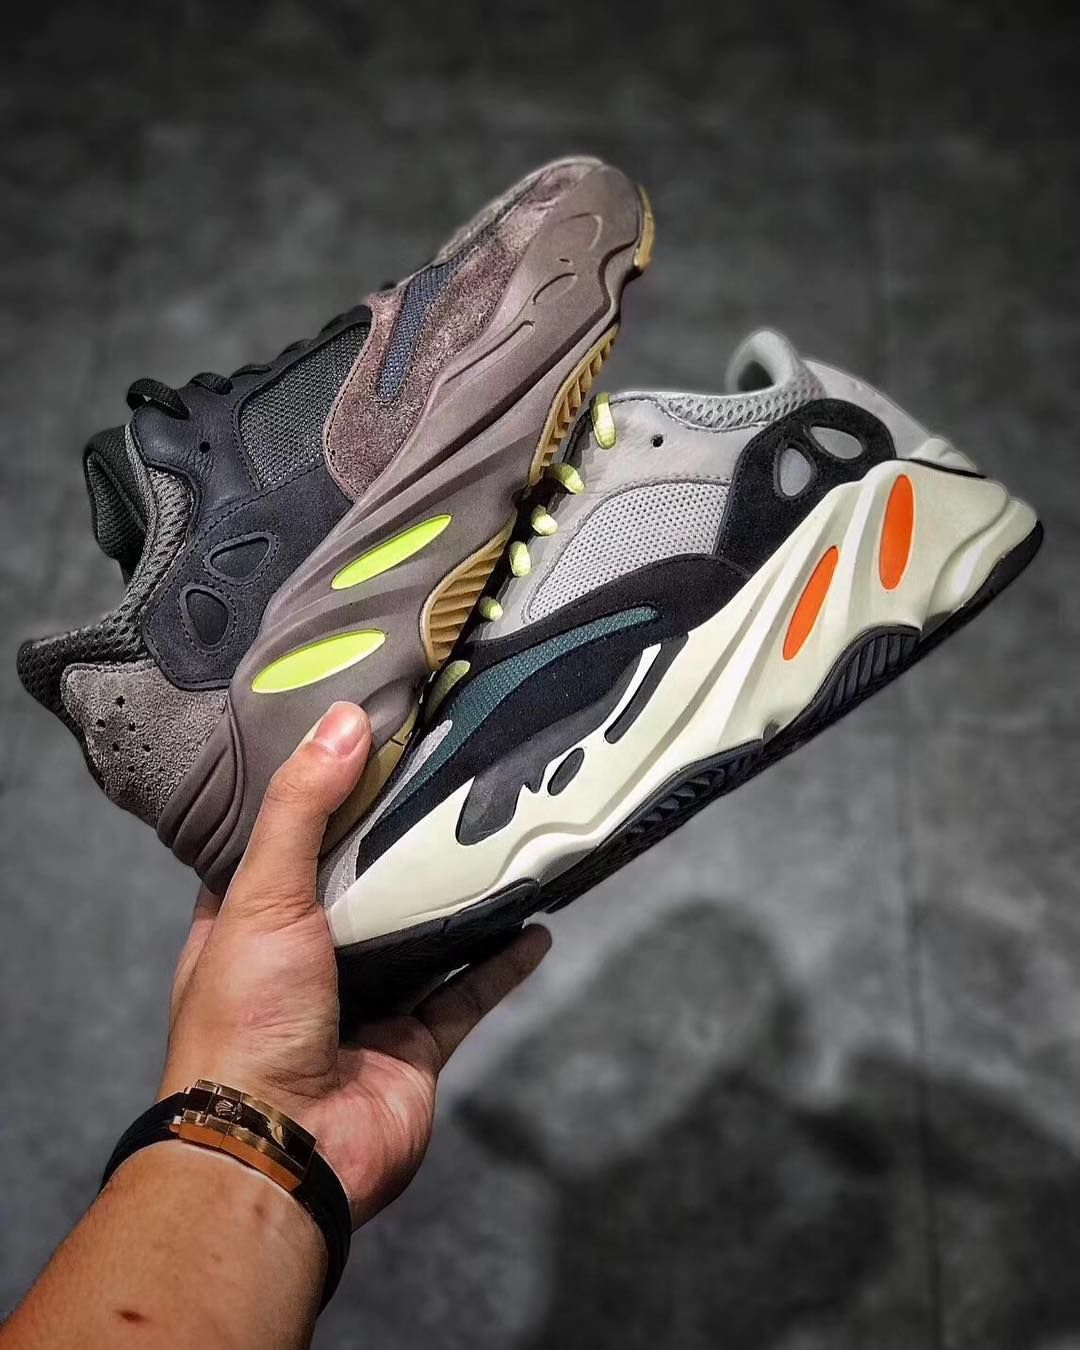 71bed931c4490 Street Fashion👉Yeezy Boost 700 Waverunner   Mauve DM me if interested US  Size 4-13  adidaskanyewest  boostheaven  complexkicks…